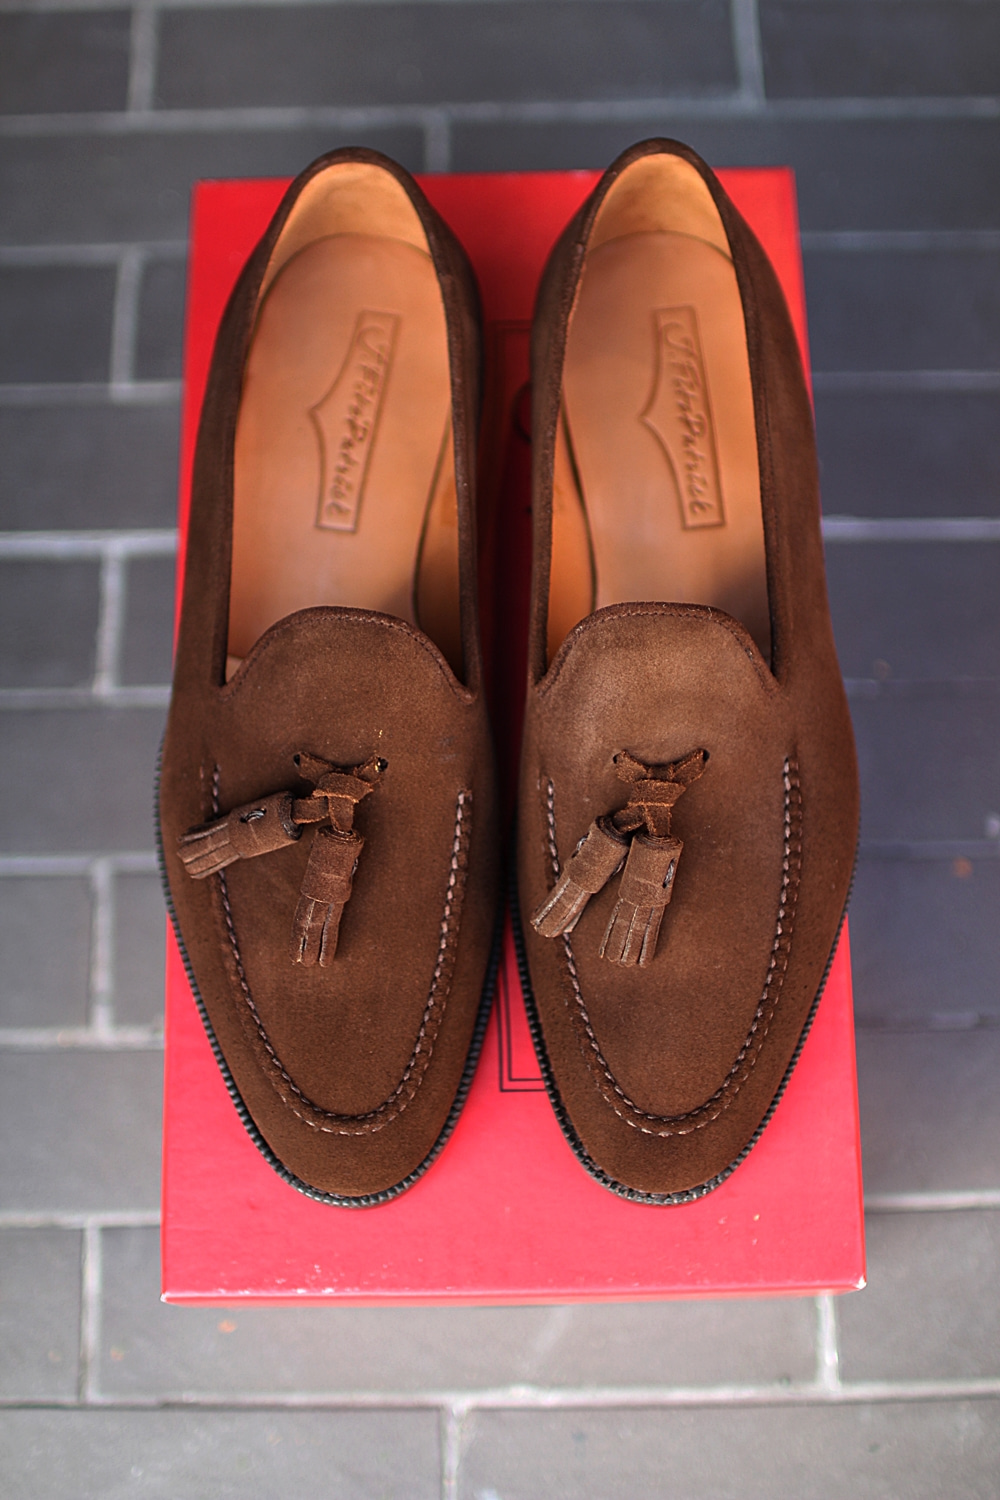 Tassel loafer Dark brown suede LESCHIJ.fitz patrick(제이피츠패트릭)